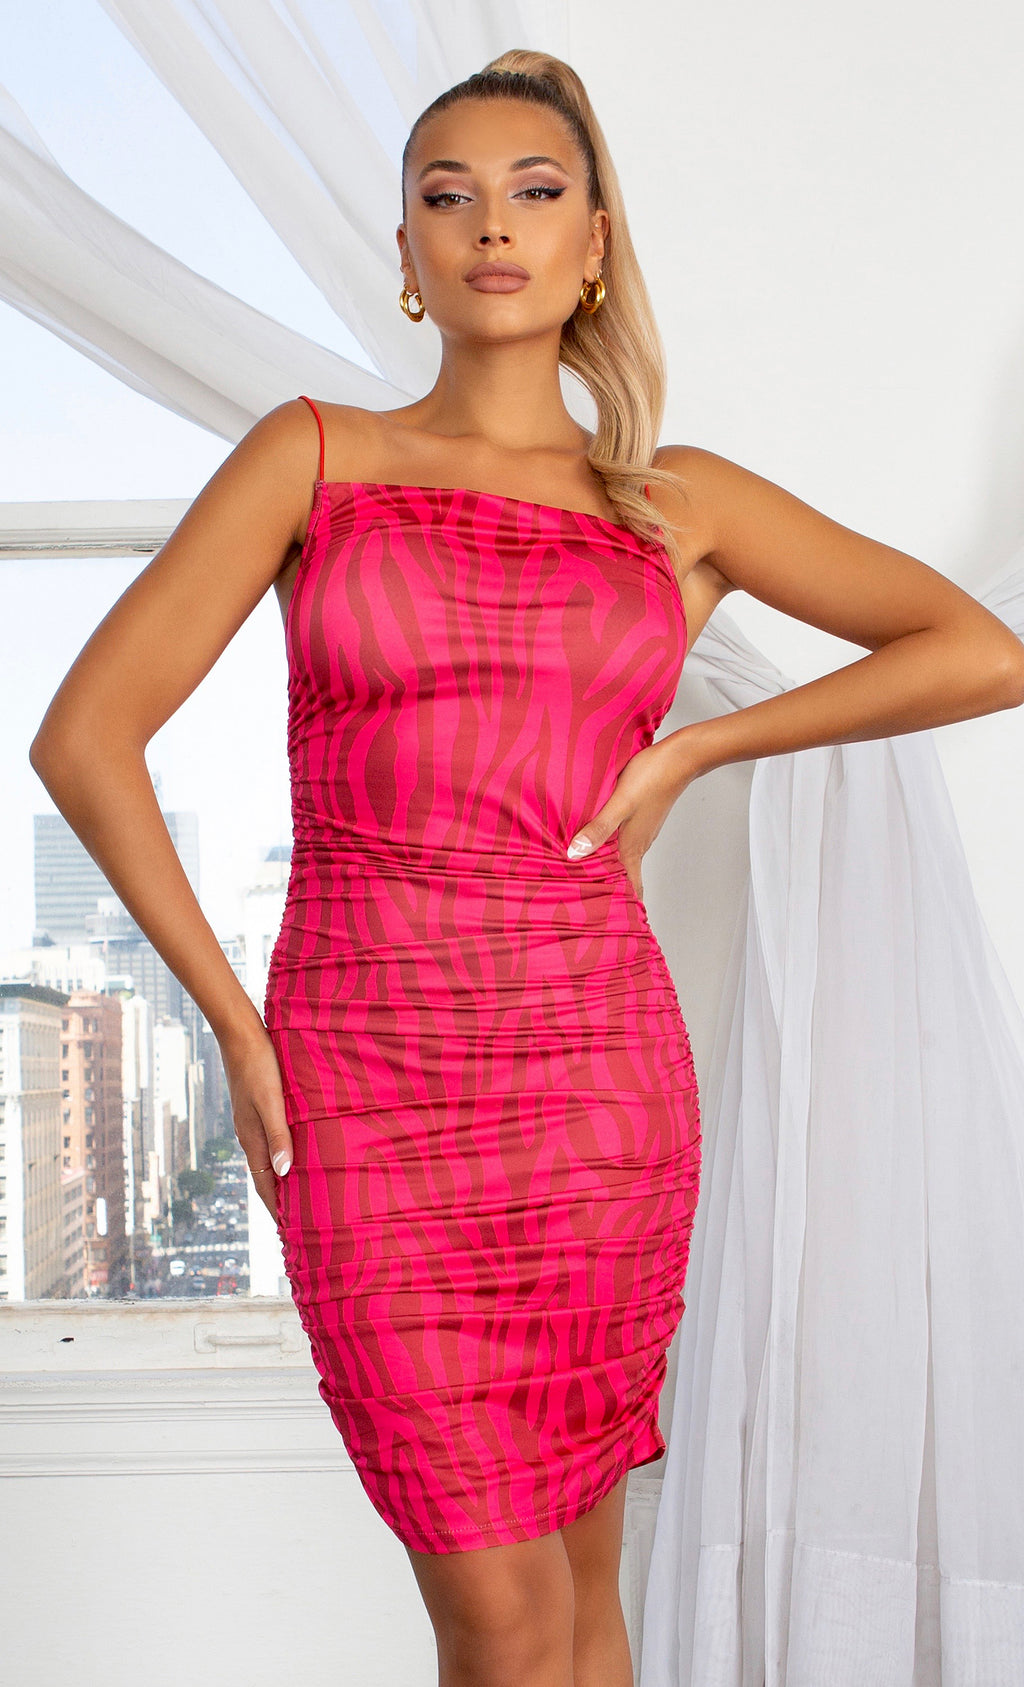 Going Wild Zebra Print Pattern Hot Pink Fuchsia Bodycon Square Neck Spaghetti Strap Sleeveless Mini Bodycon Dress